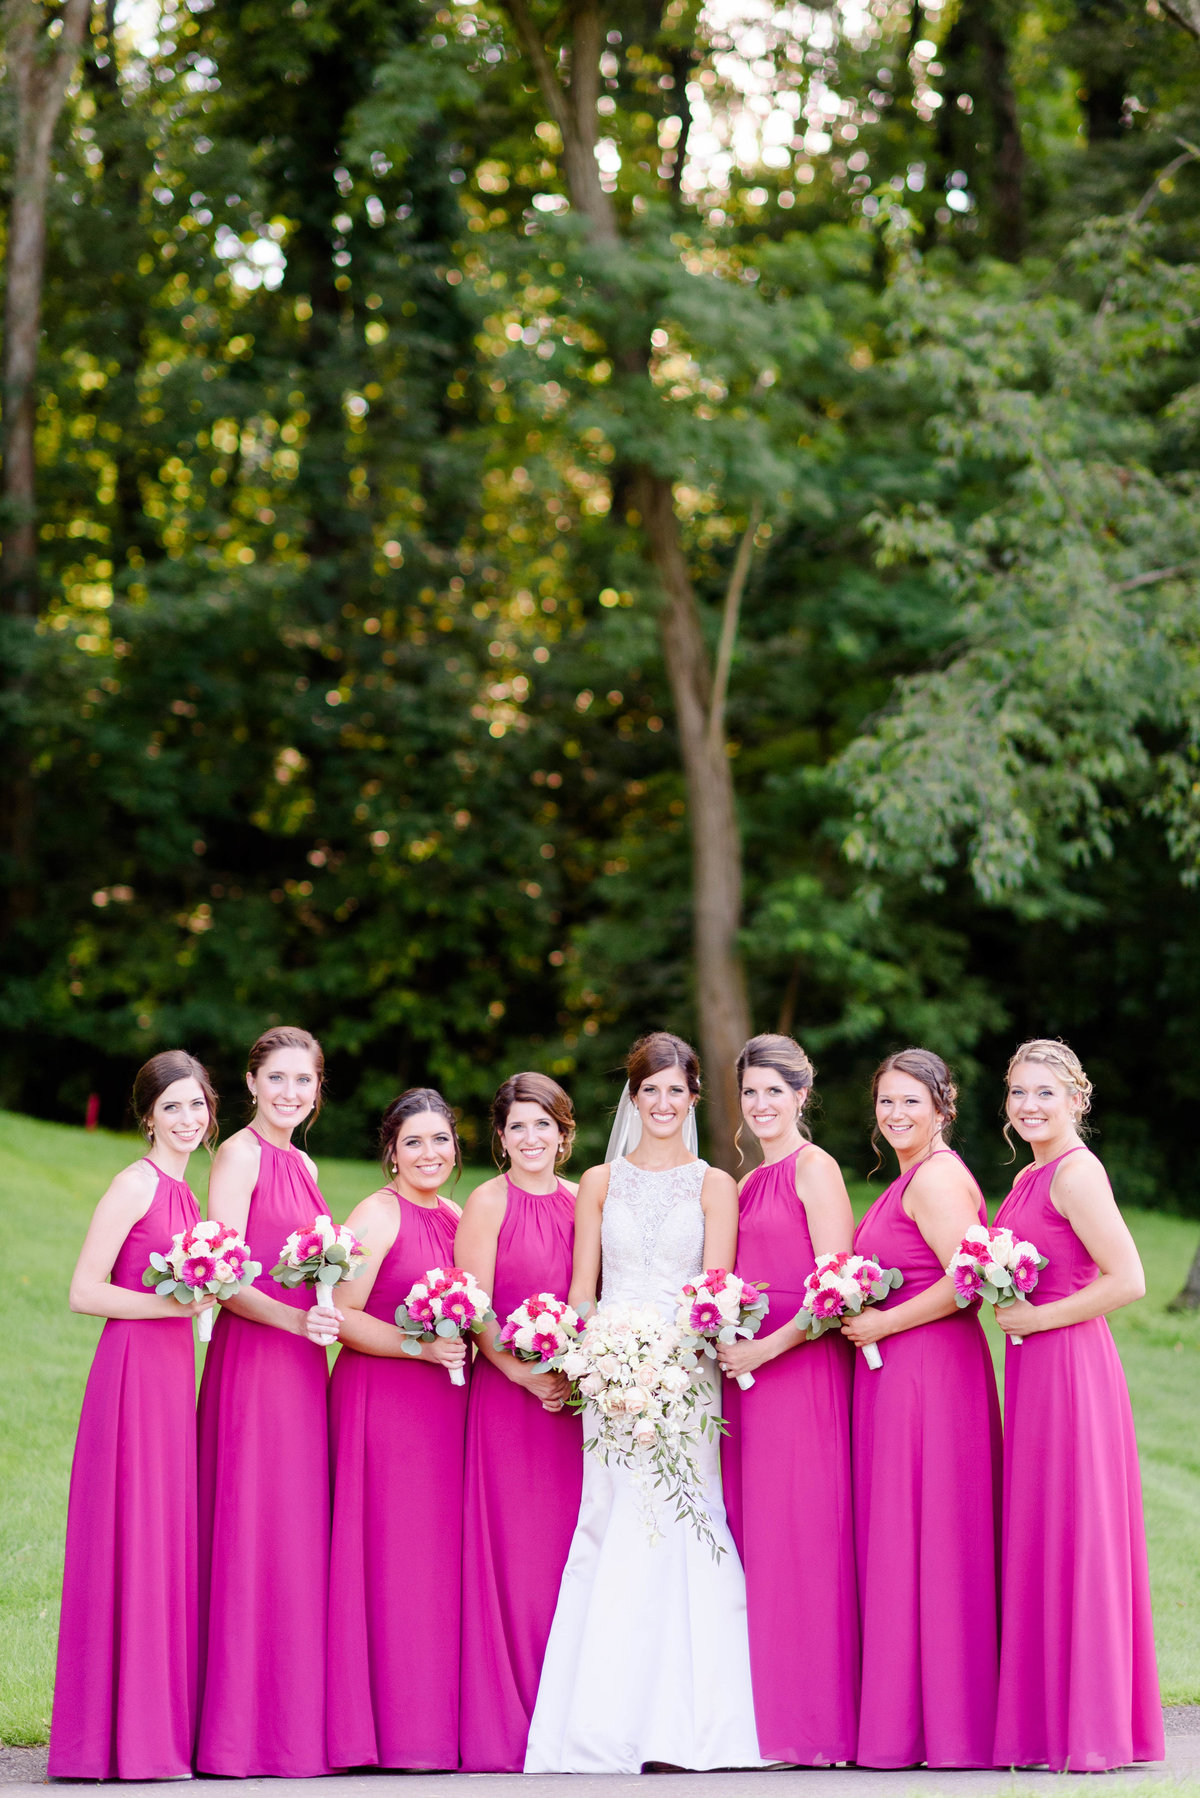 MB-valleybrooke-country-club-wedding-photos-102